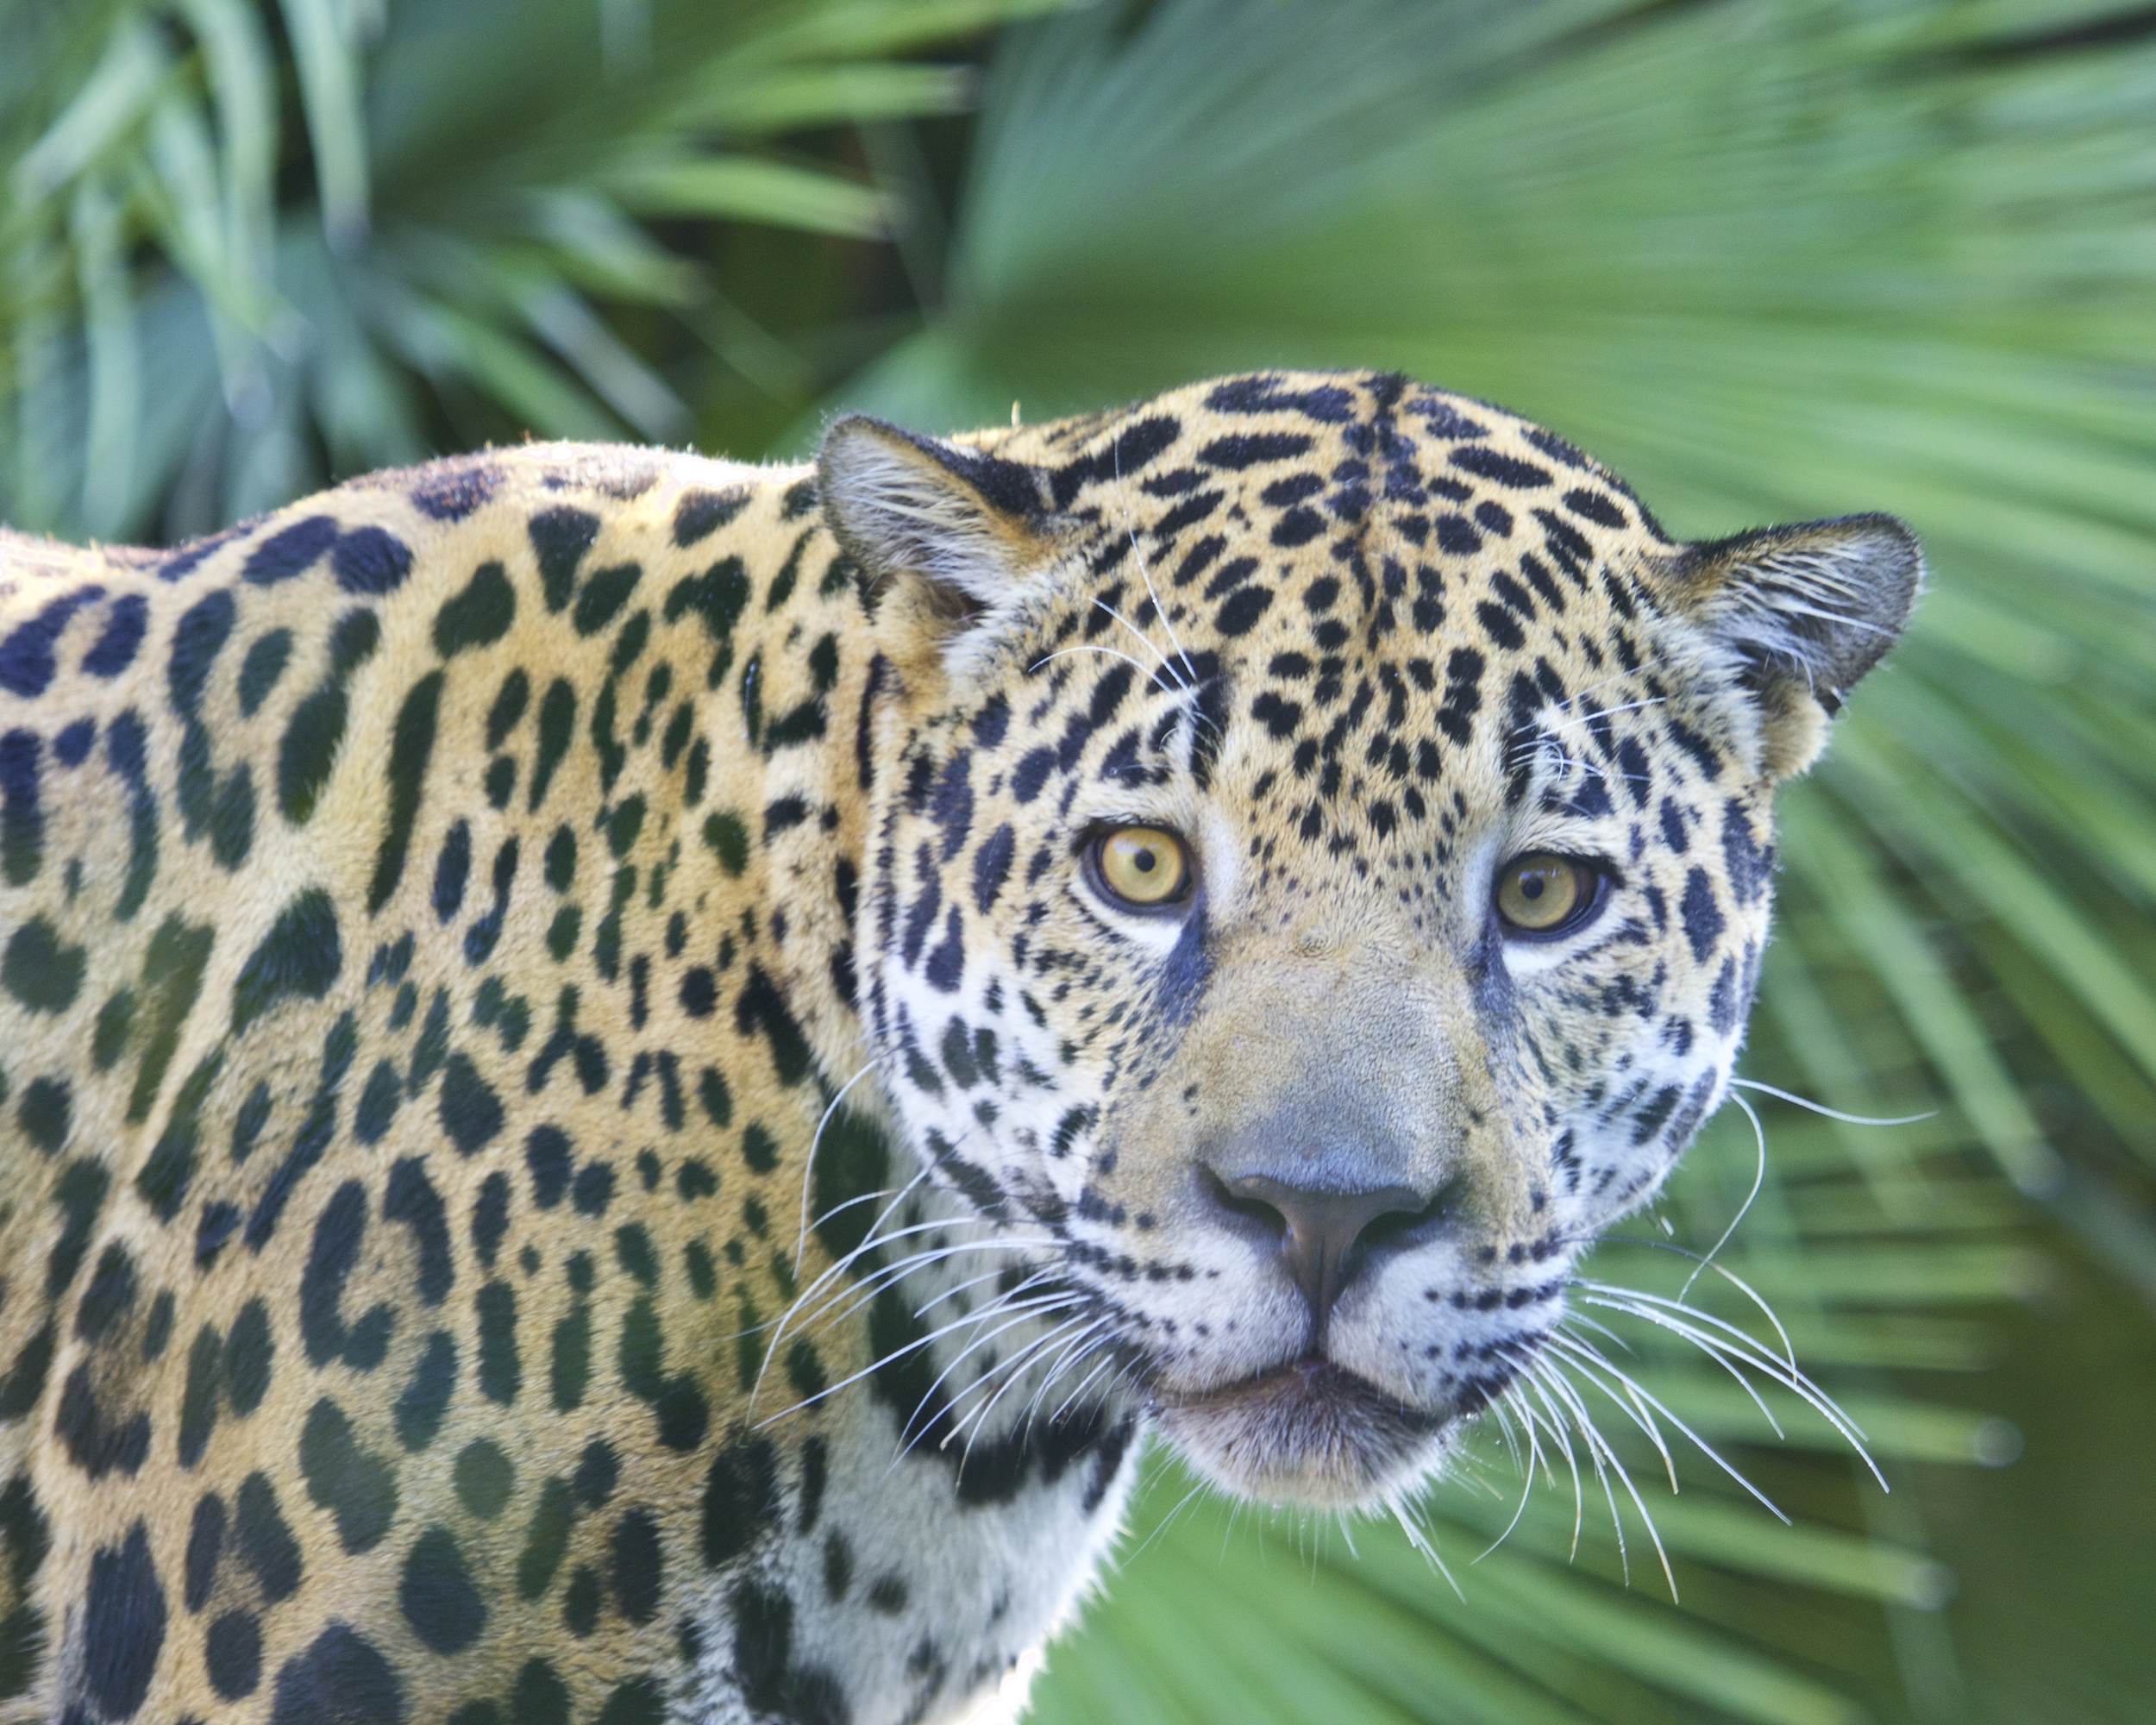 Meet Khan, the young male jaguar, a recent addition to the Jacksonville zoo